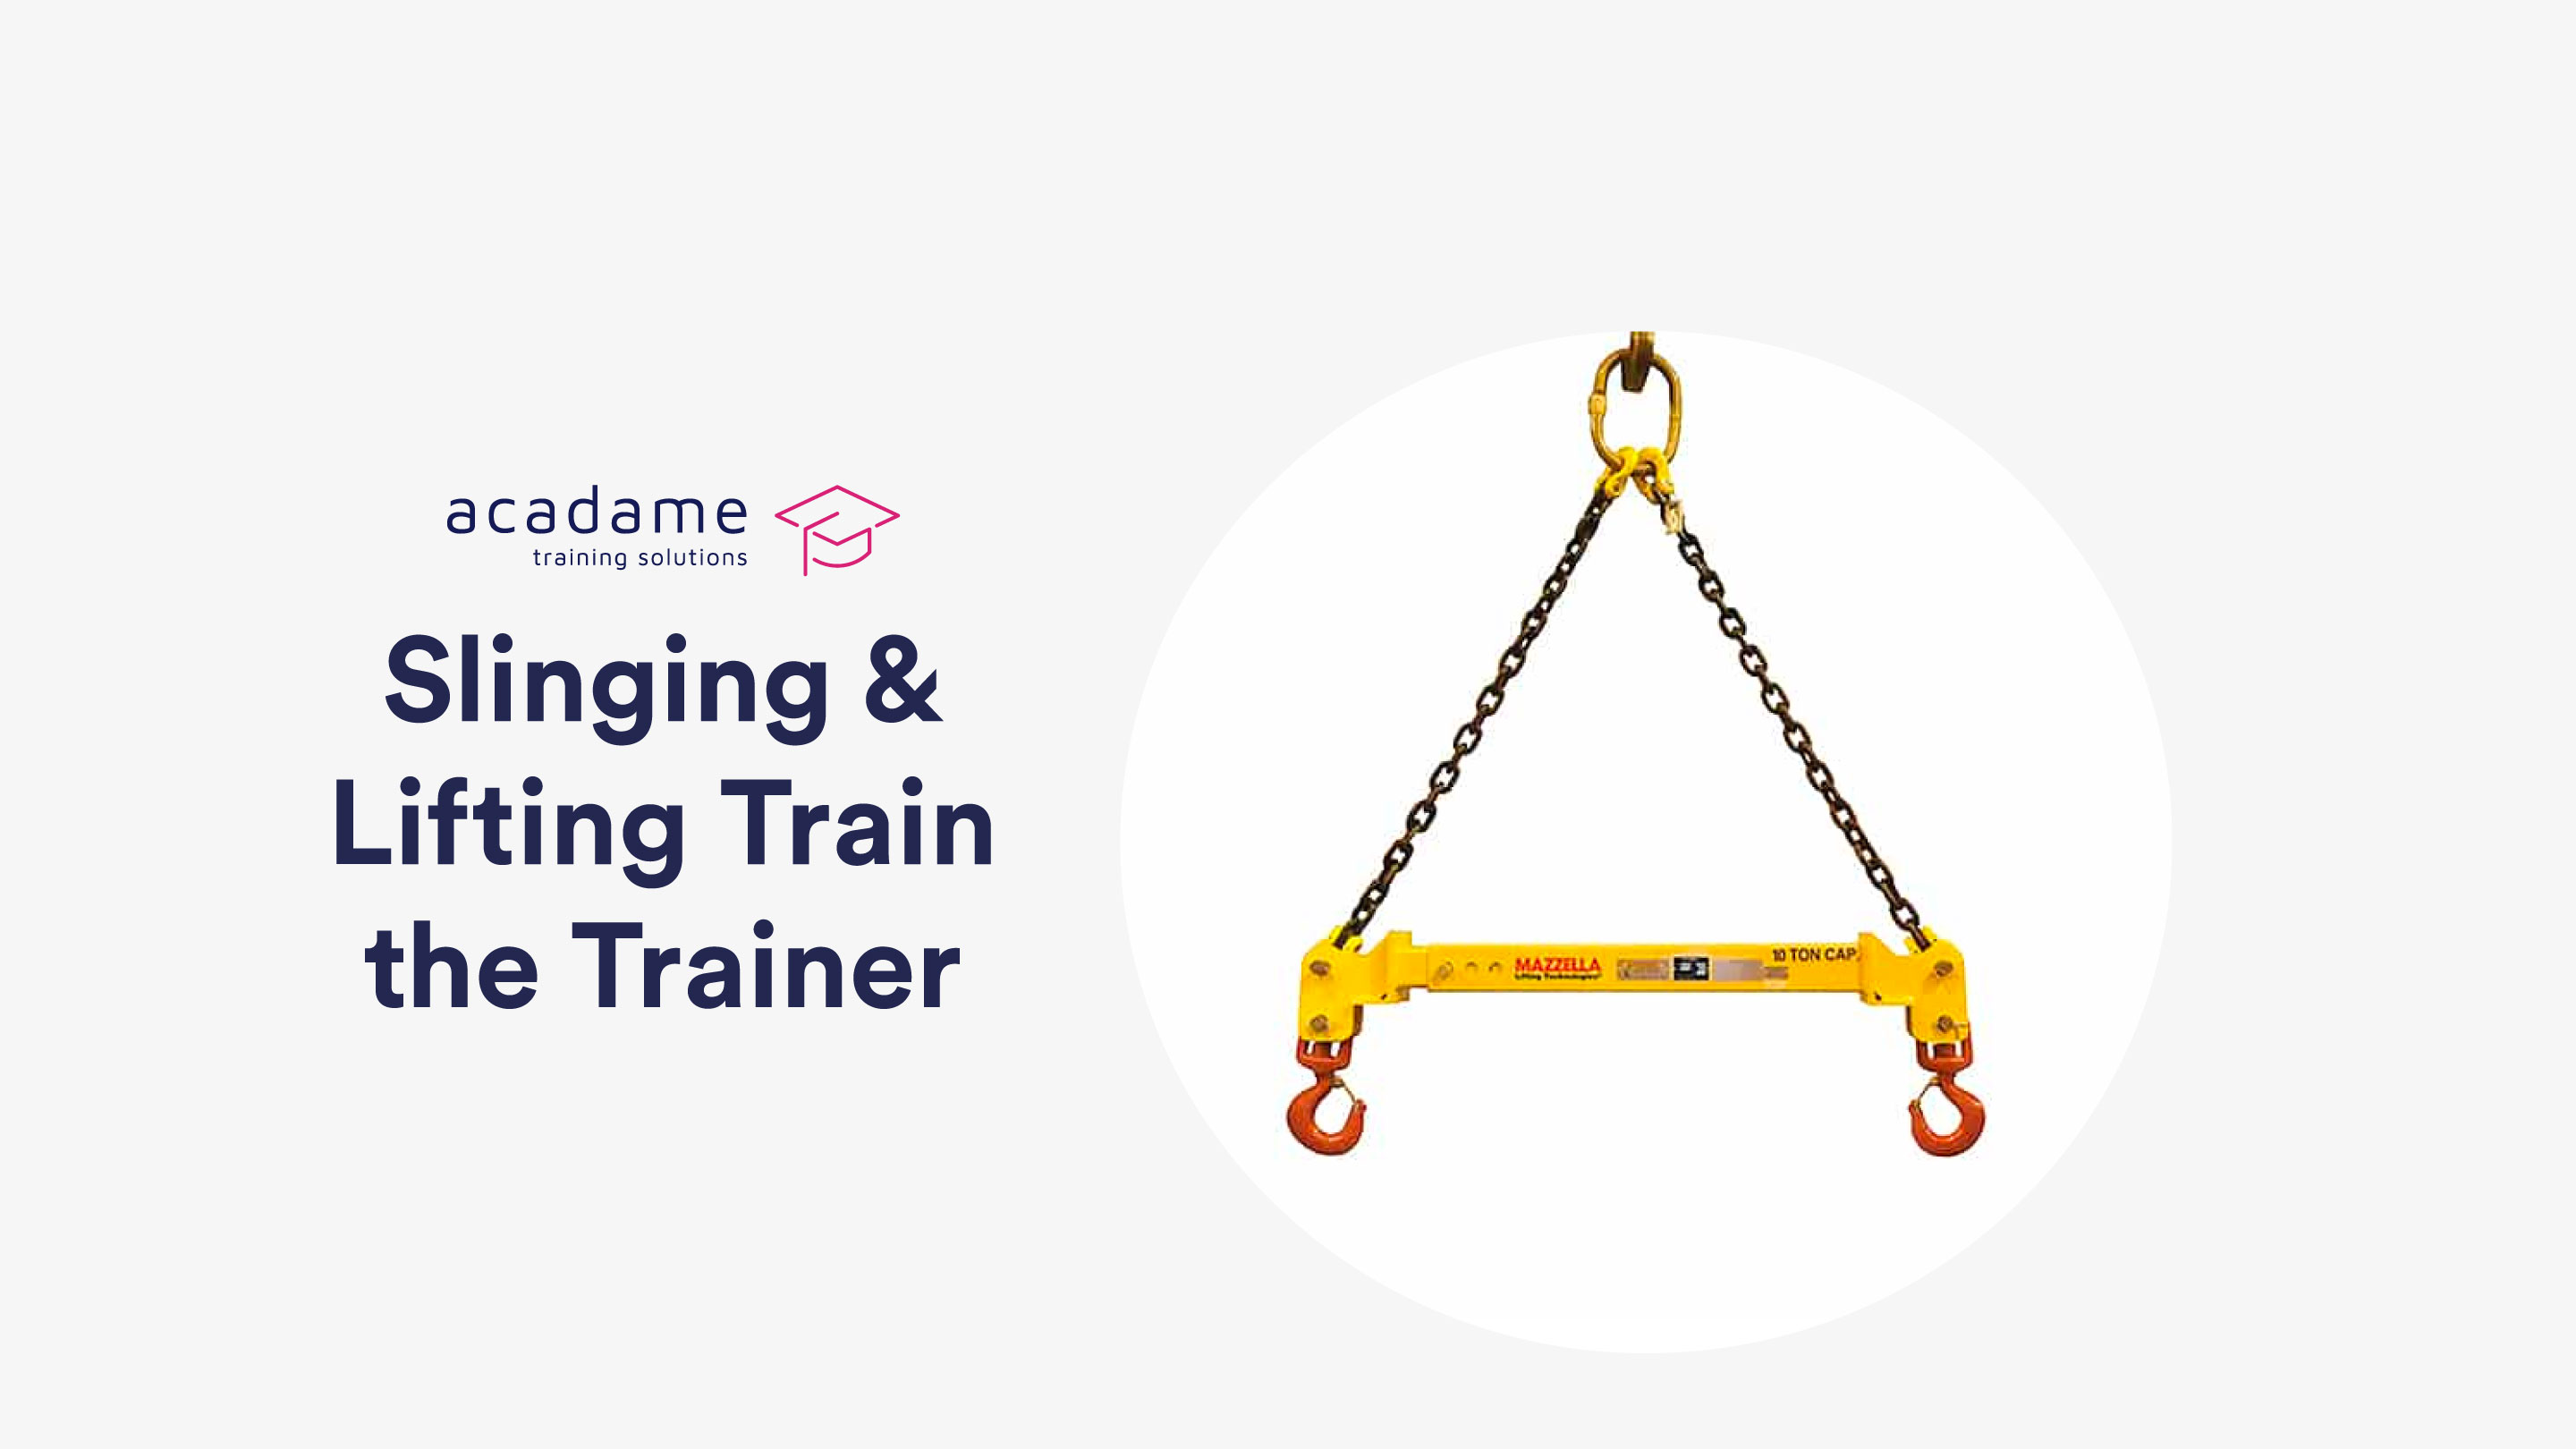 slinging_lifting_train_the_trainer_training_course_in_stoke_on_trent.jpg